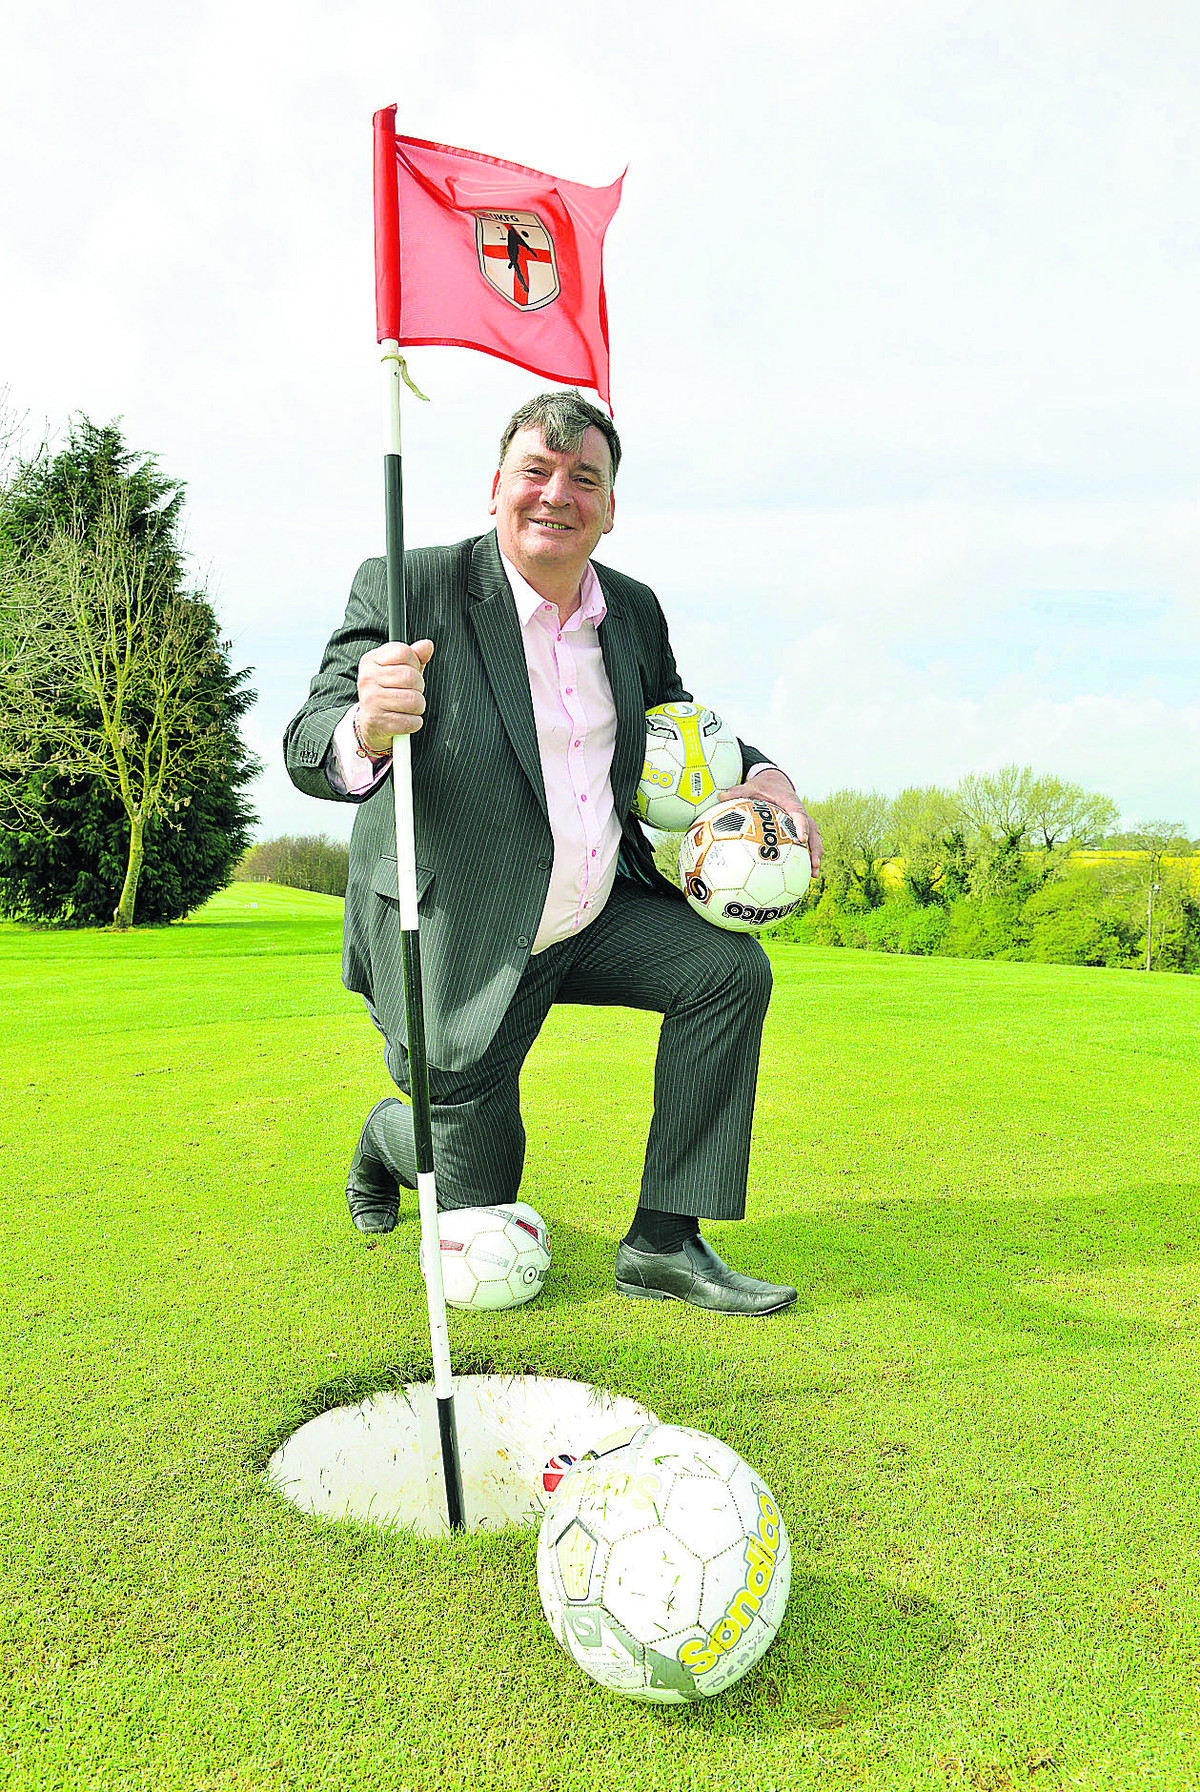 FOOTGOLF: The new craze hoping to sweep the nation